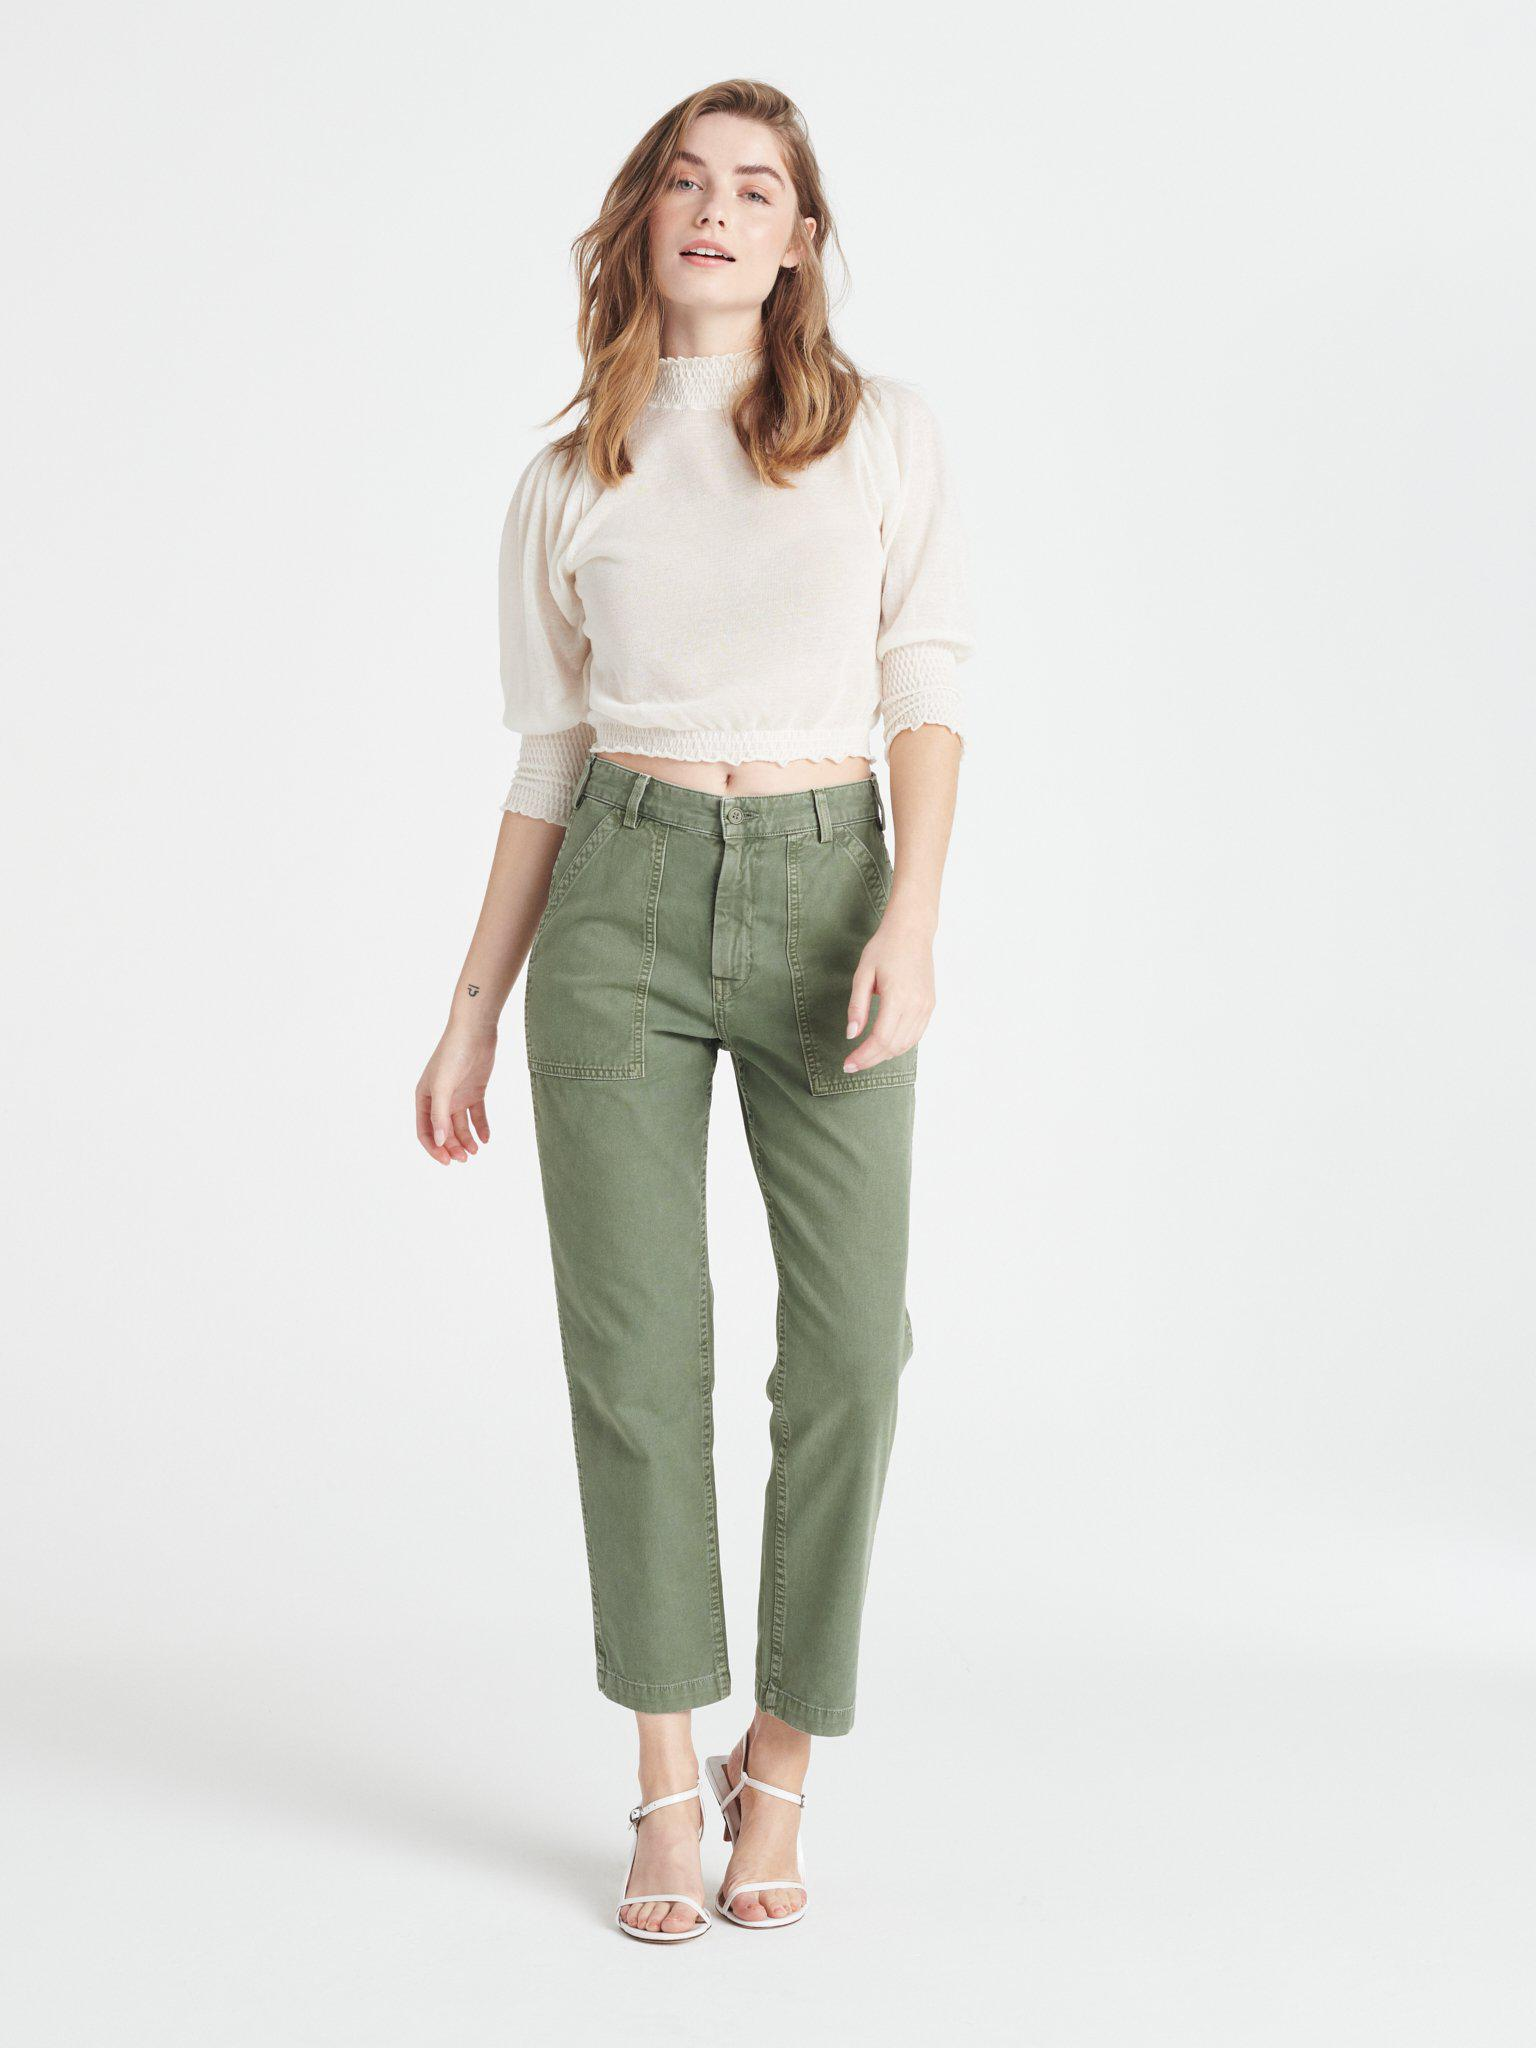 Officer Pant - Fatigue Green